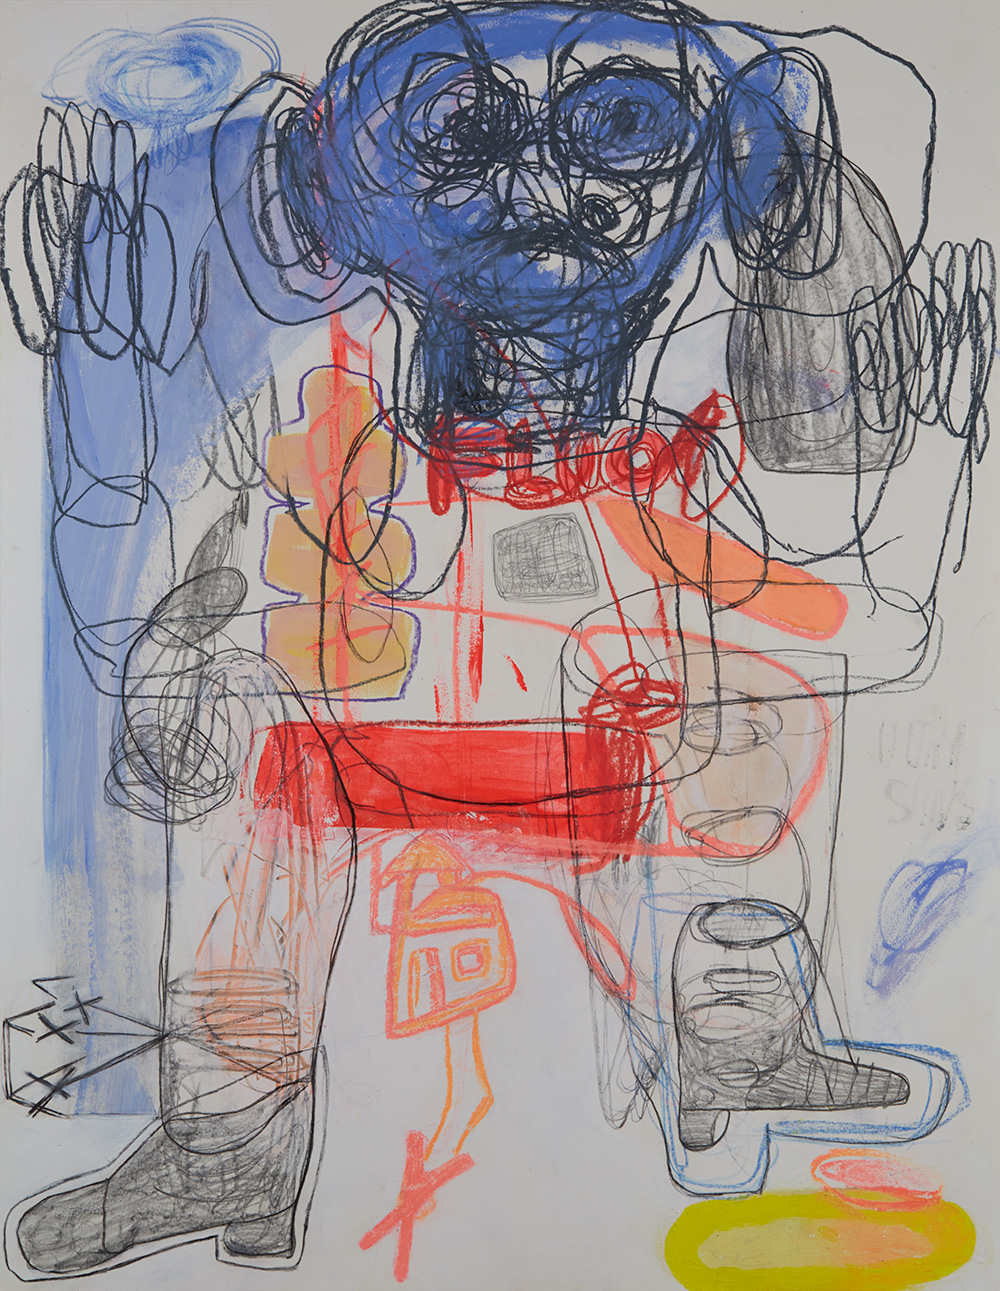 Caroline Demangel    Igor surpris par une giboulée  , 2016 Mixed media on paper 25.59 x 19.69 inches 65 x 50 cm CDm 32